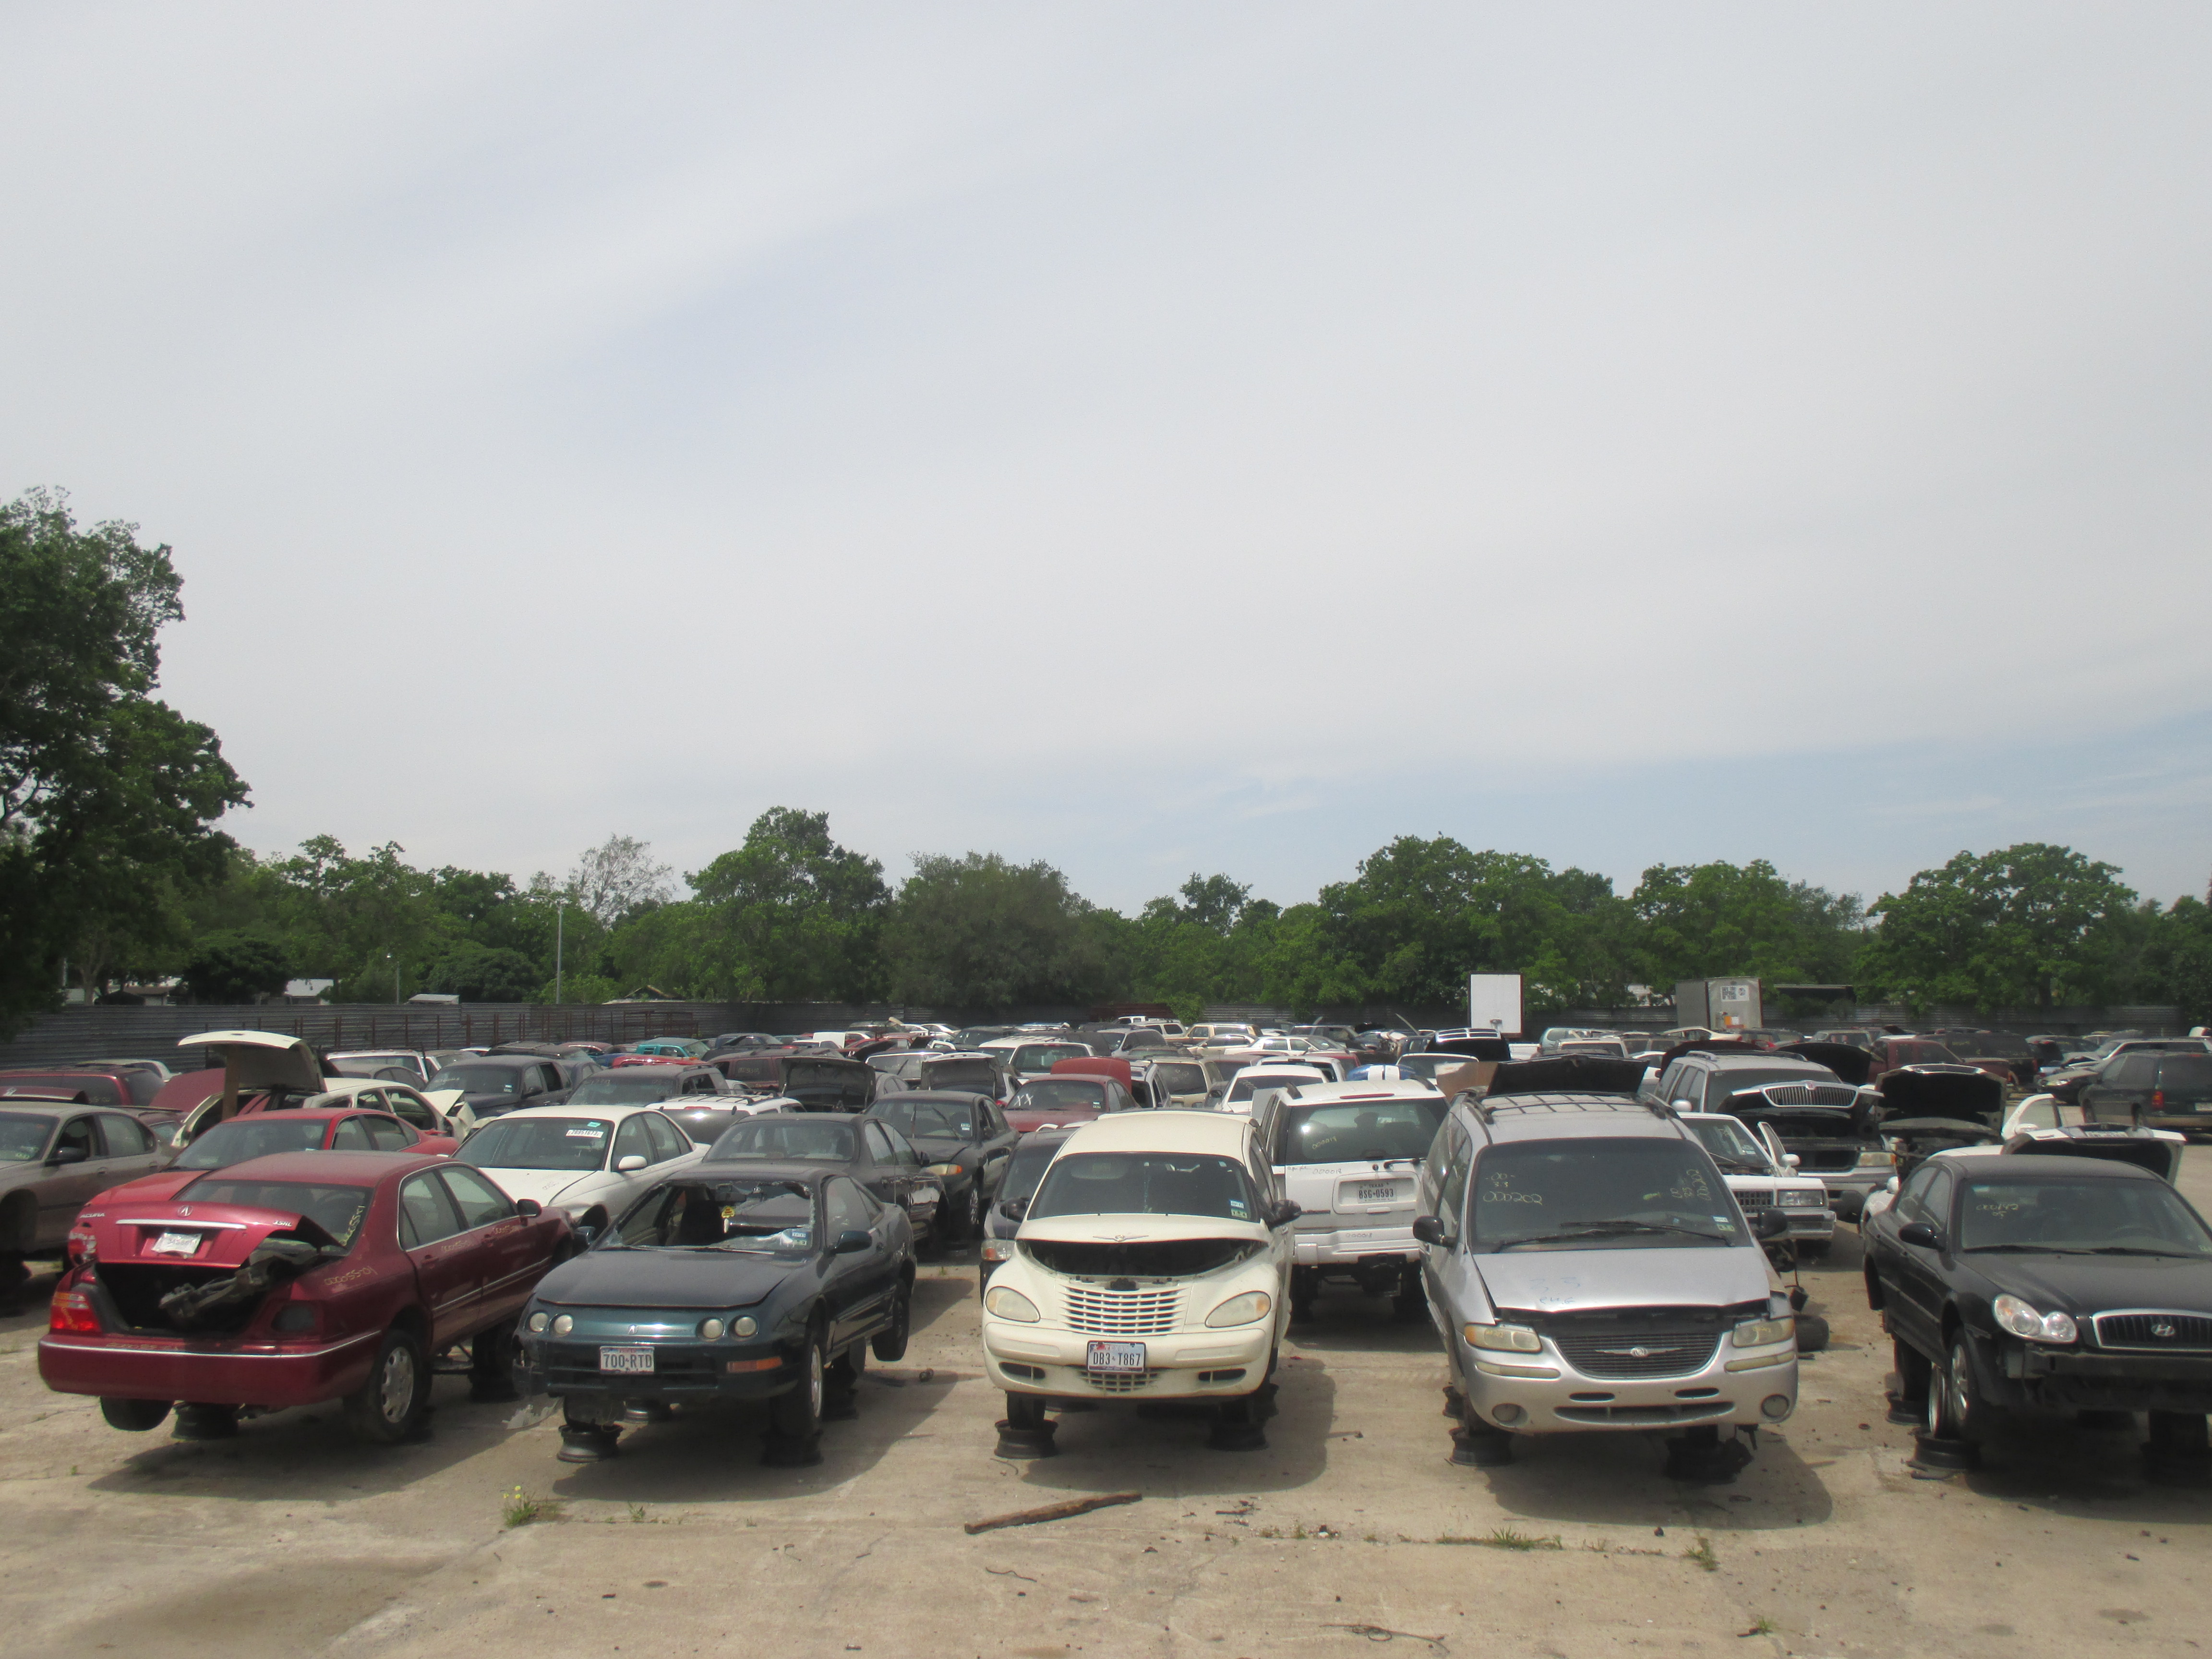 Salvage Yards for Sale  Buy Salvage Yards at BizQuest